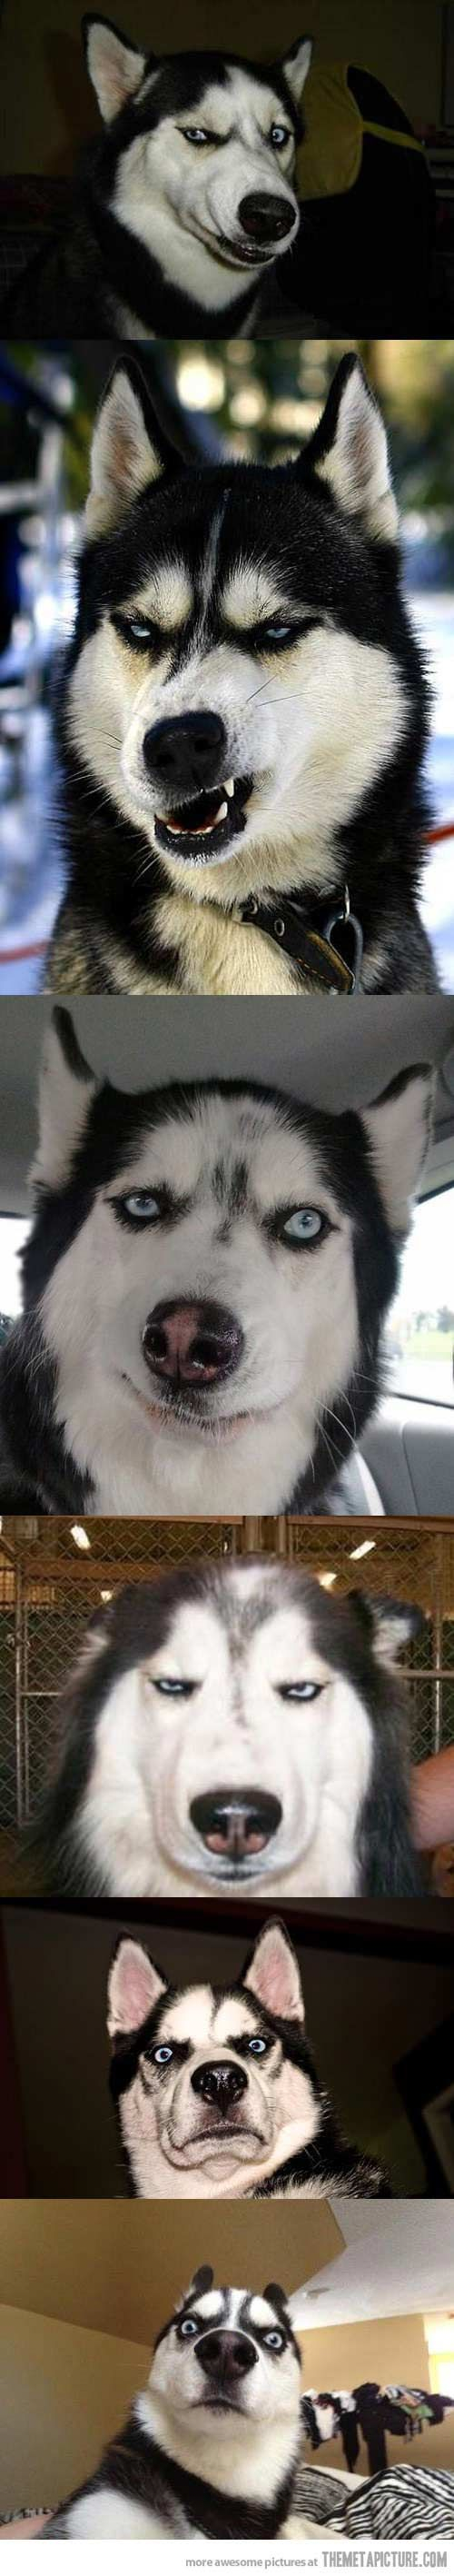 These Faces Made Me Laugh Cute Animals Funny Animals Animals